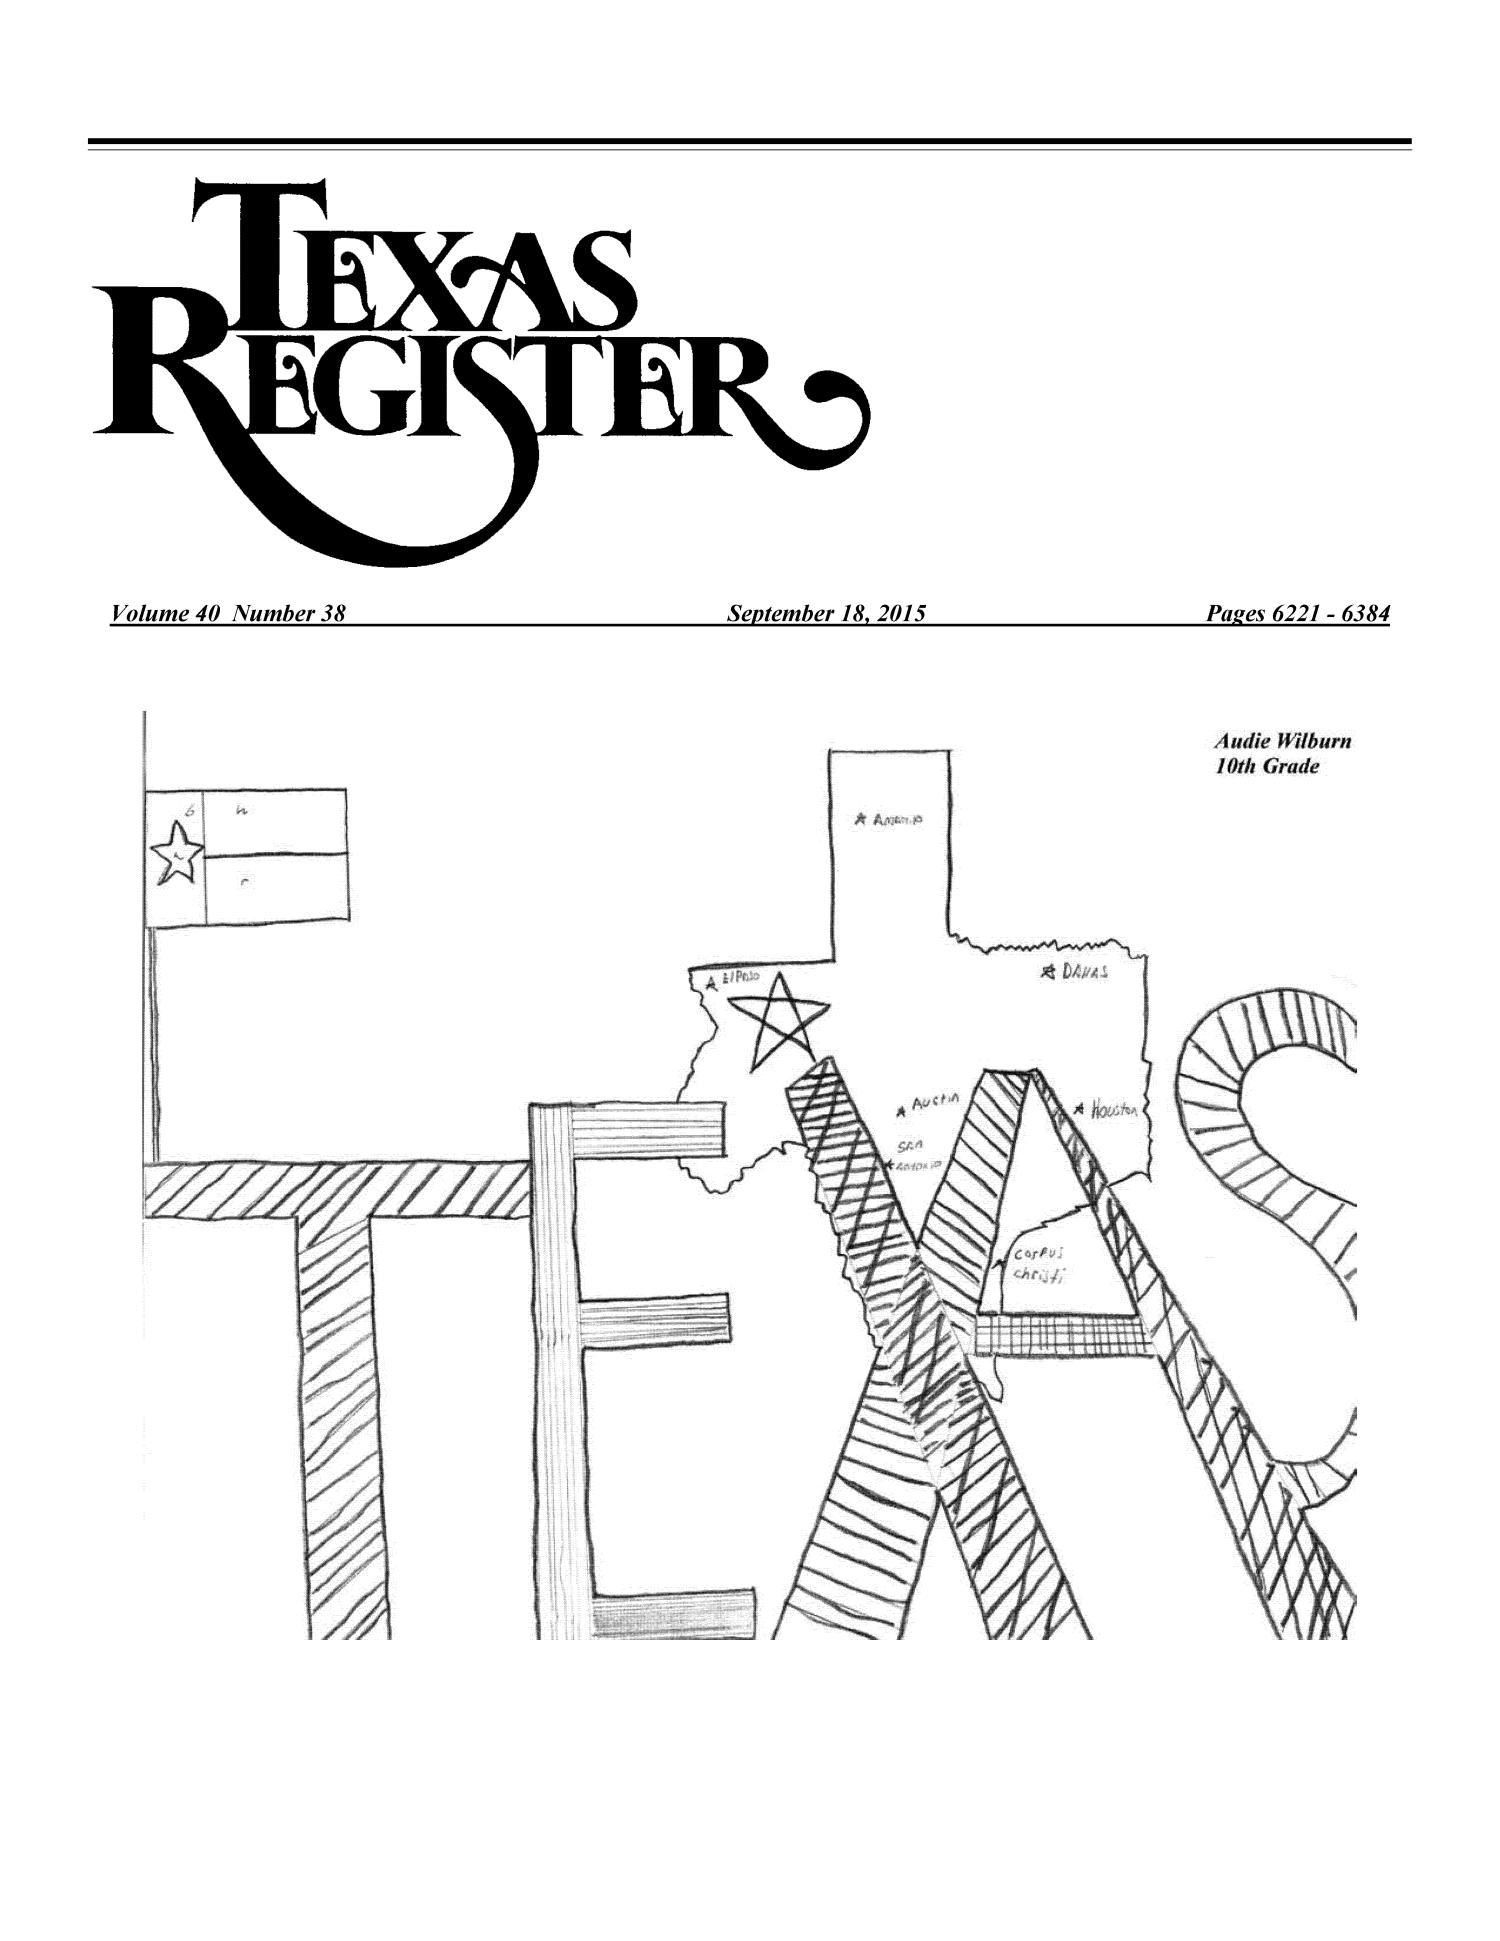 Texas Register, Volume 40, Number 38, Pages 6221-6384